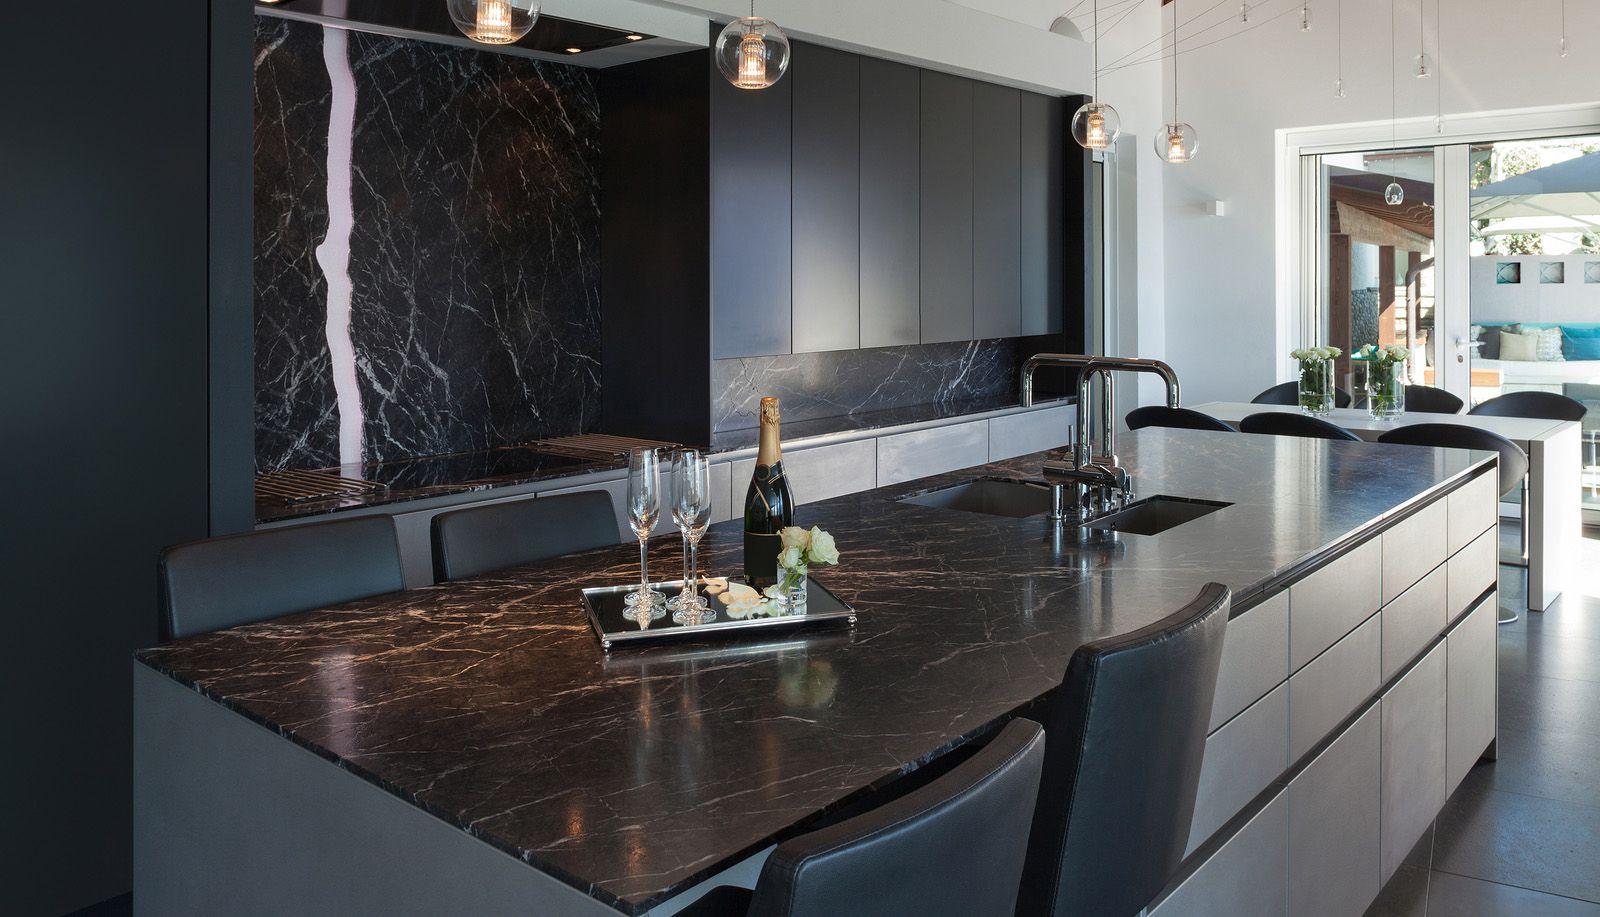 Marble countertop/backsplash with a totally flat glass